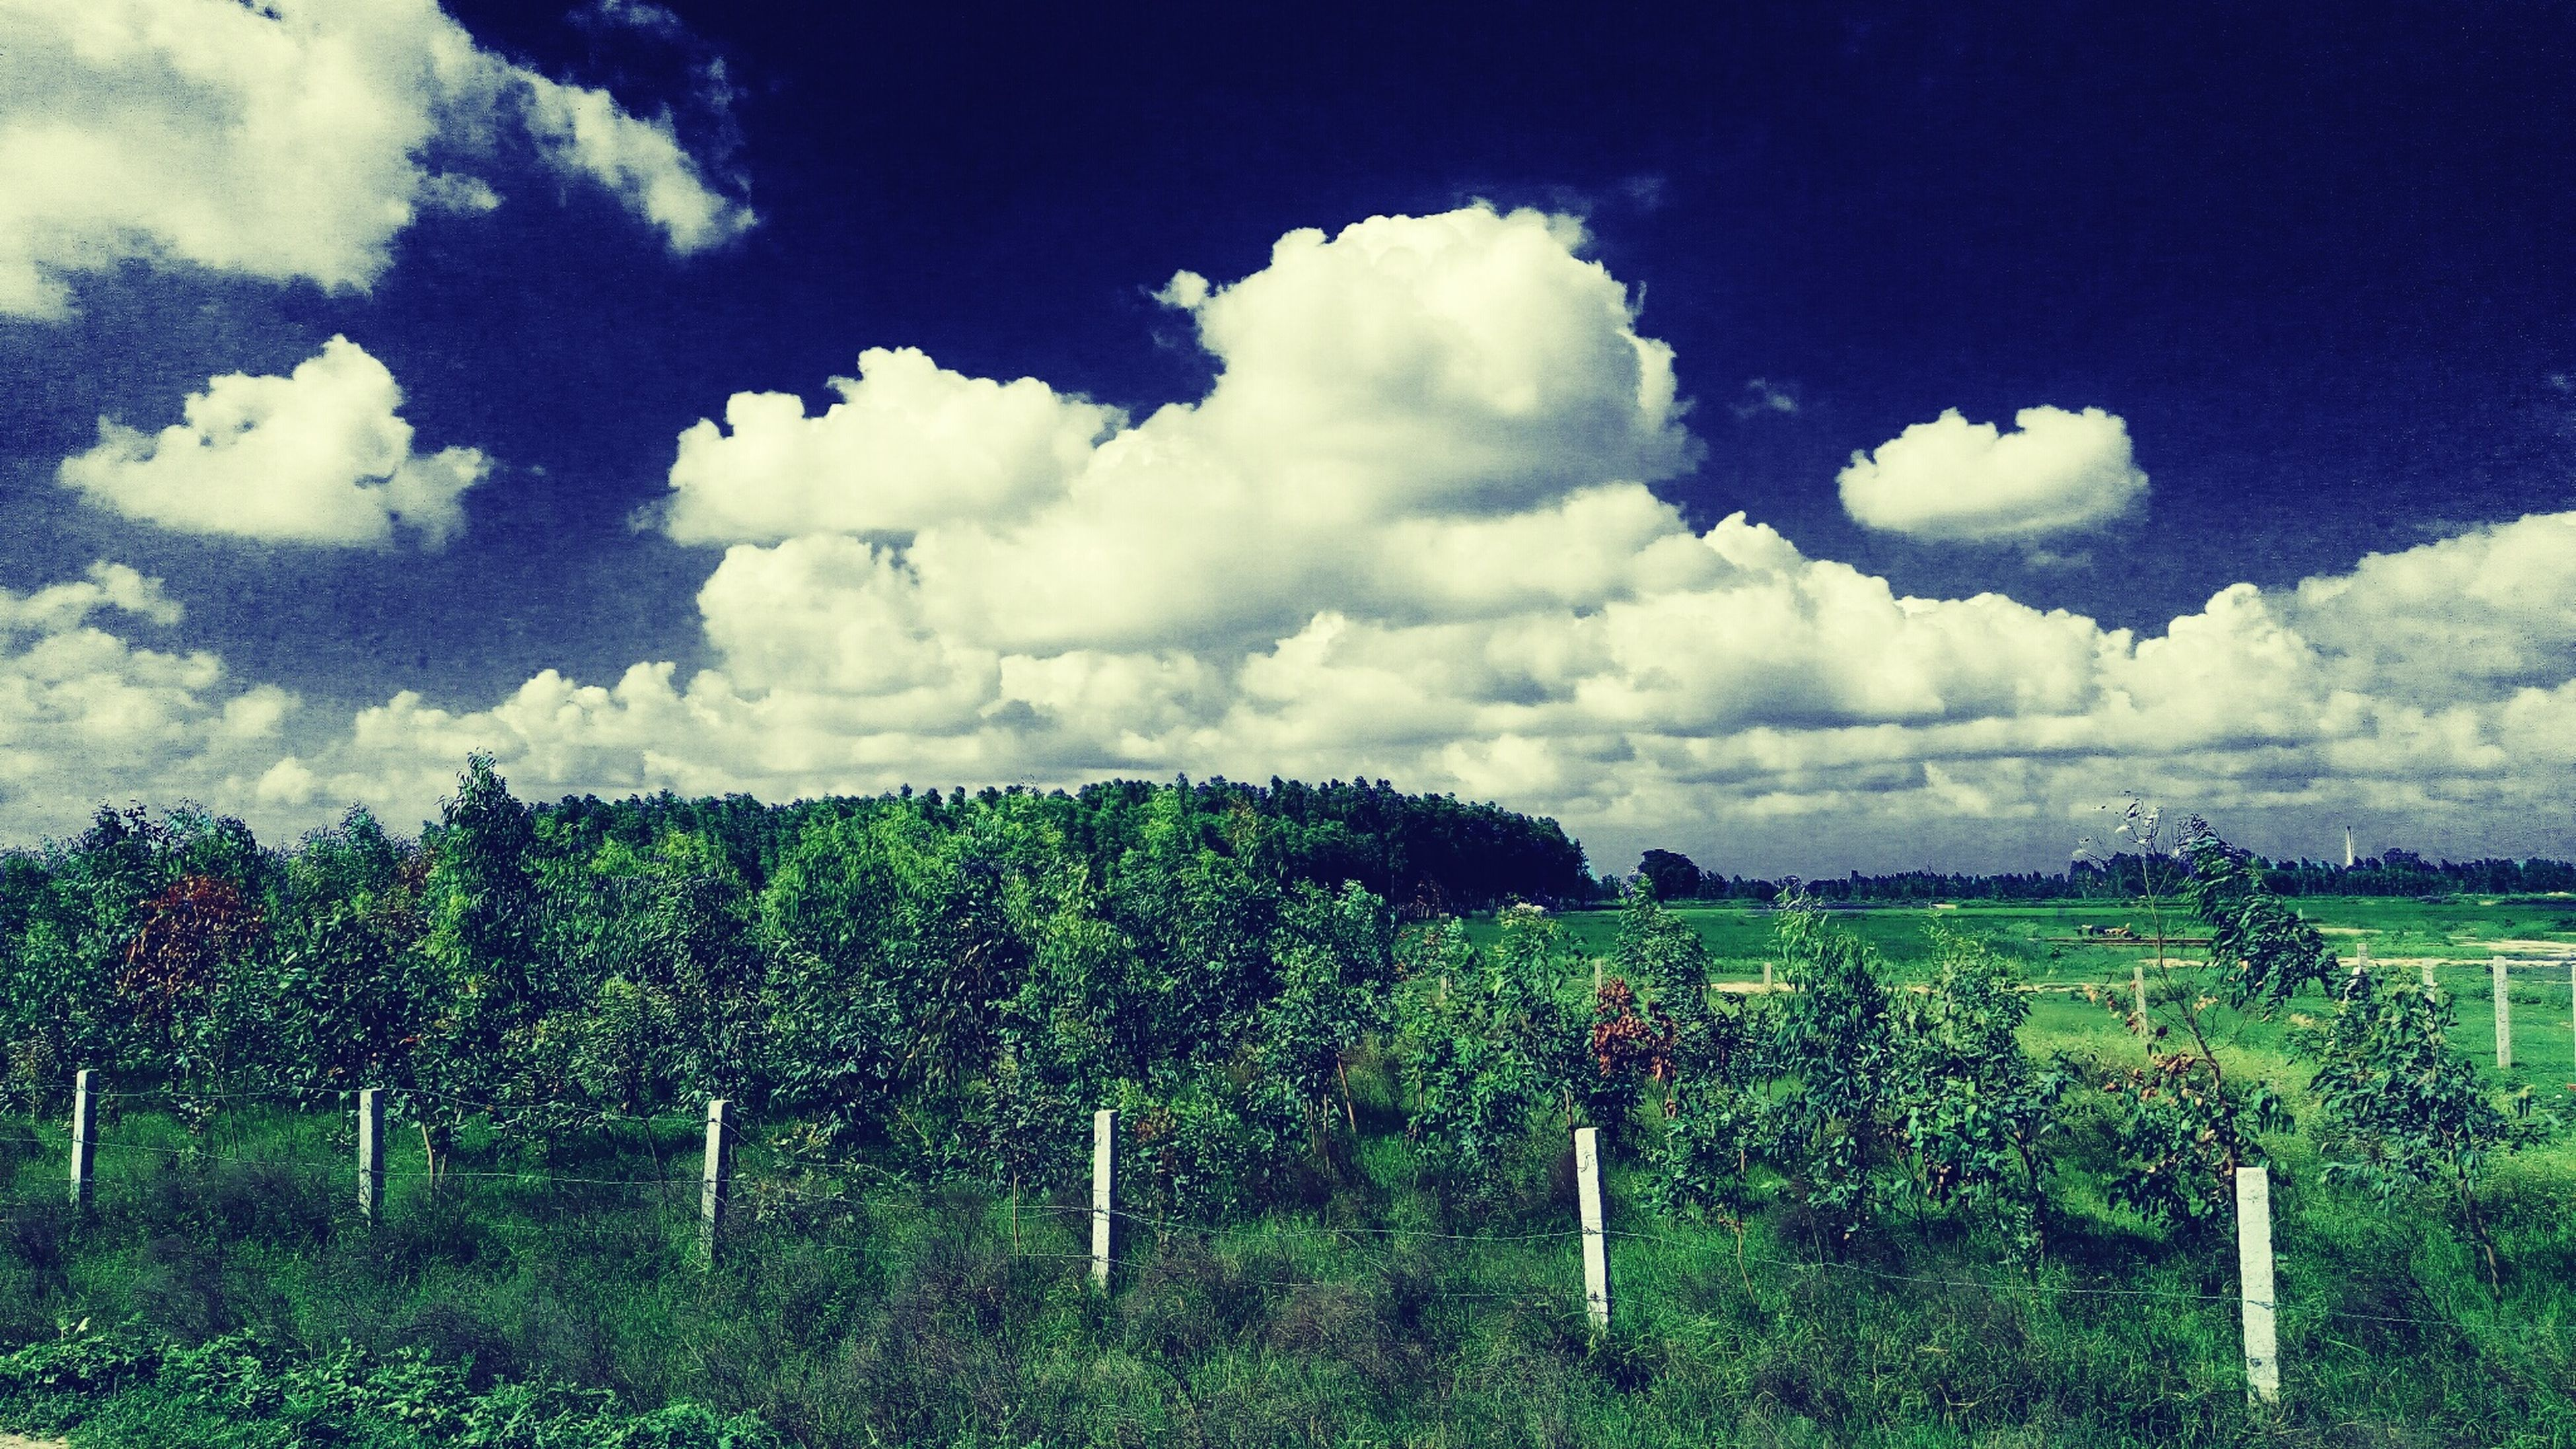 sky, tree, fence, cloud - sky, tranquil scene, tranquility, field, plant, nature, growth, blue, day, cloud, non-urban scene, scenics, rural scene, outdoors, beauty in nature, cloudy, cumulus cloud, agriculture, hedge, green color, no people, remote, cloudscape